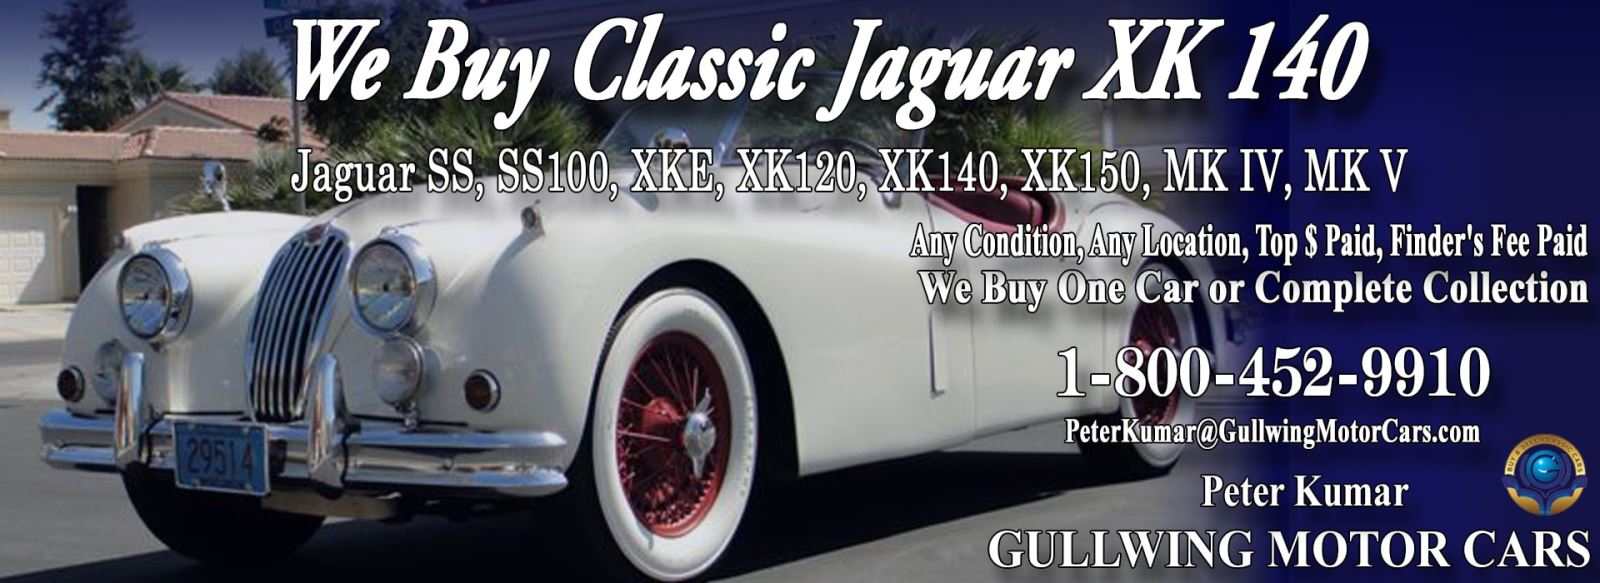 Classic Jaguar for sale, we buy vintage Jaguar XK140. Call Peter Kumar. Gullwing Motor